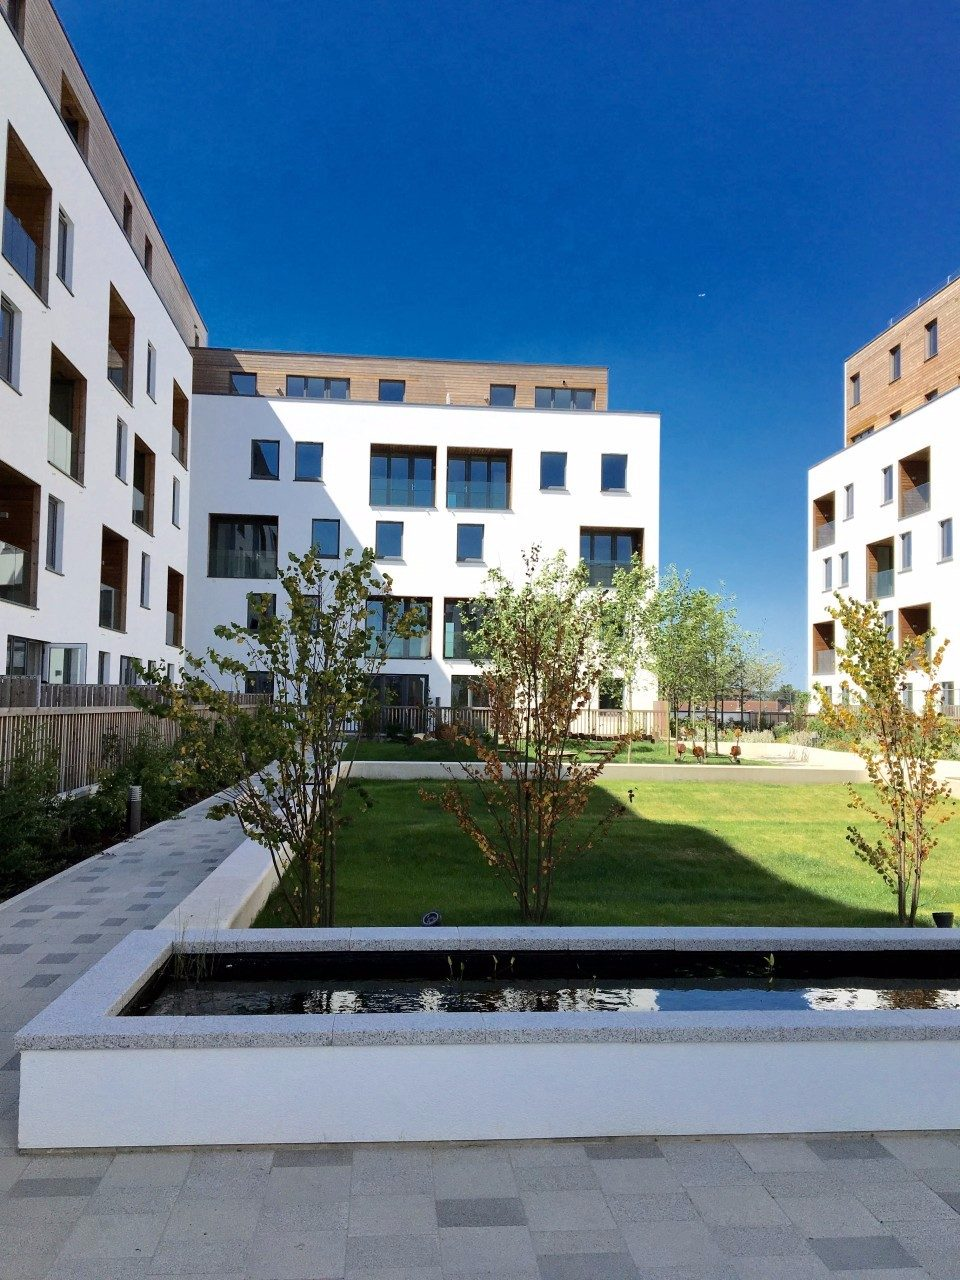 Spacious One Bedroom Apartment In Tnq Colindale The Online Letting Agents Ltd